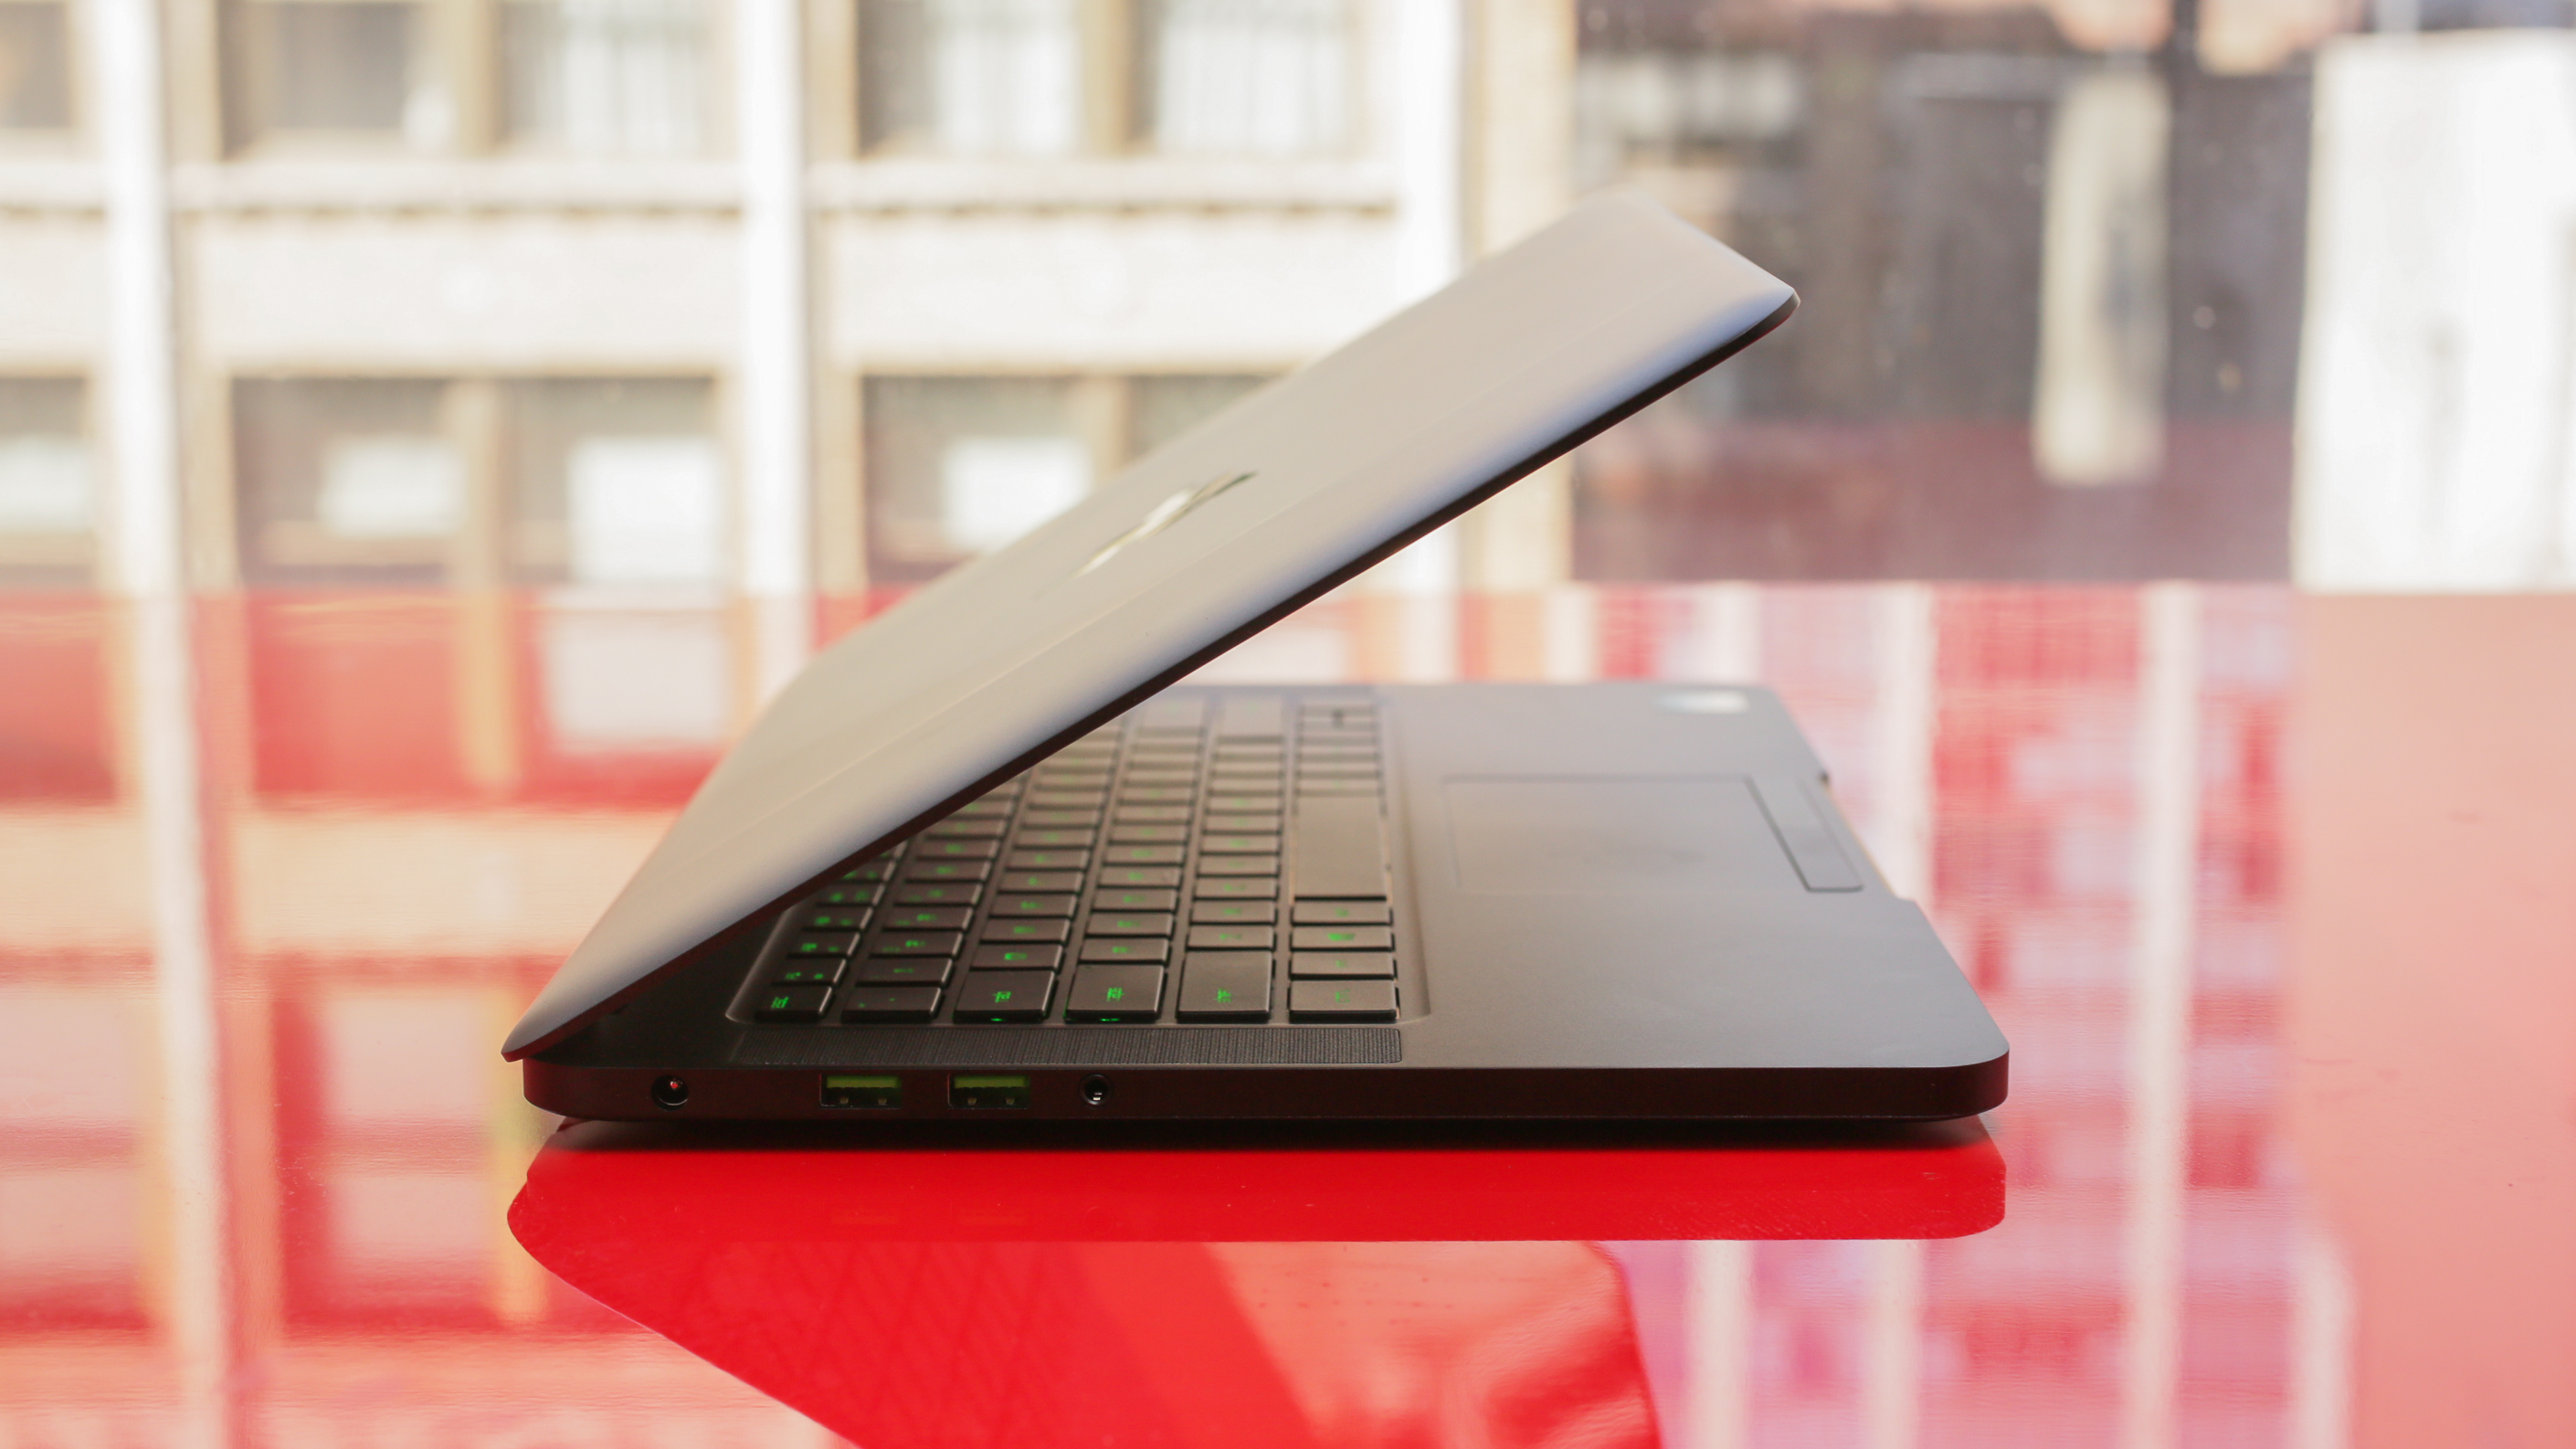 razer-blade-2014-product-photos011.jpg